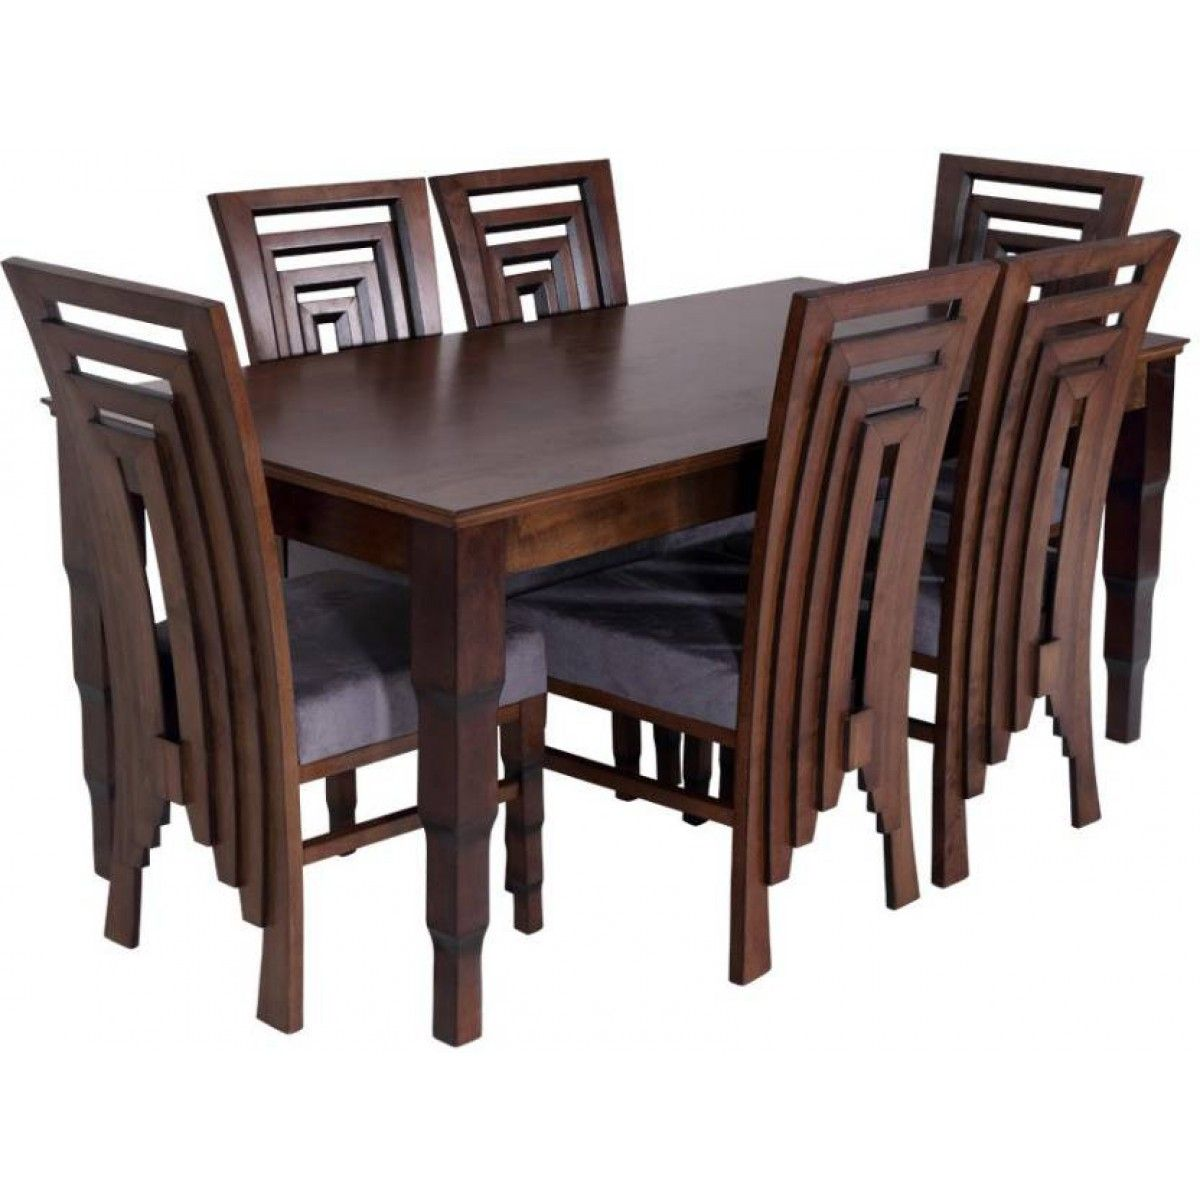 Gorevizon Oribi Bench Wood Dining Table Set Finish Color Teak Wooden Dining Table Designs Dining Table Design Modern Dinning Table Design